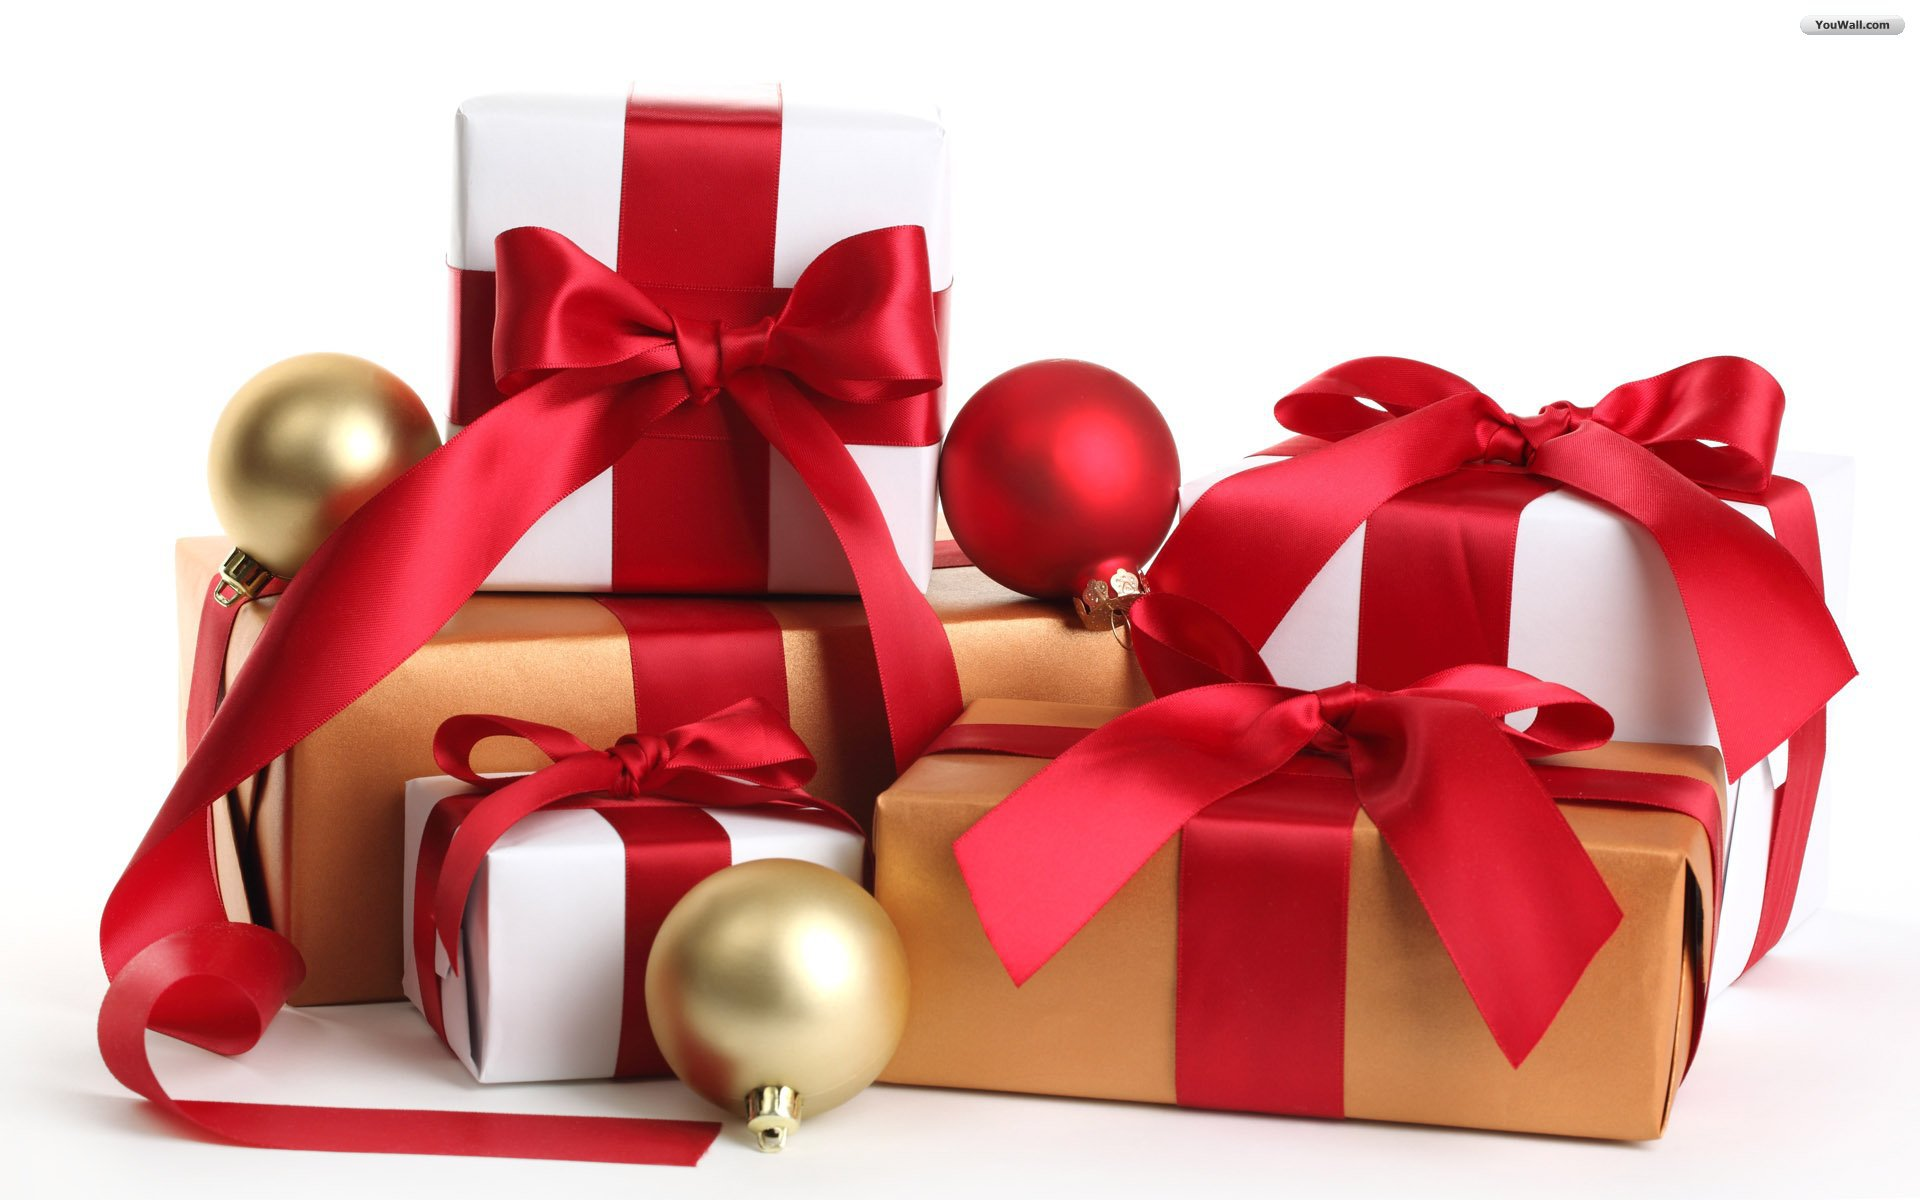 Christmas Gift Boxes – Happy Holidays!